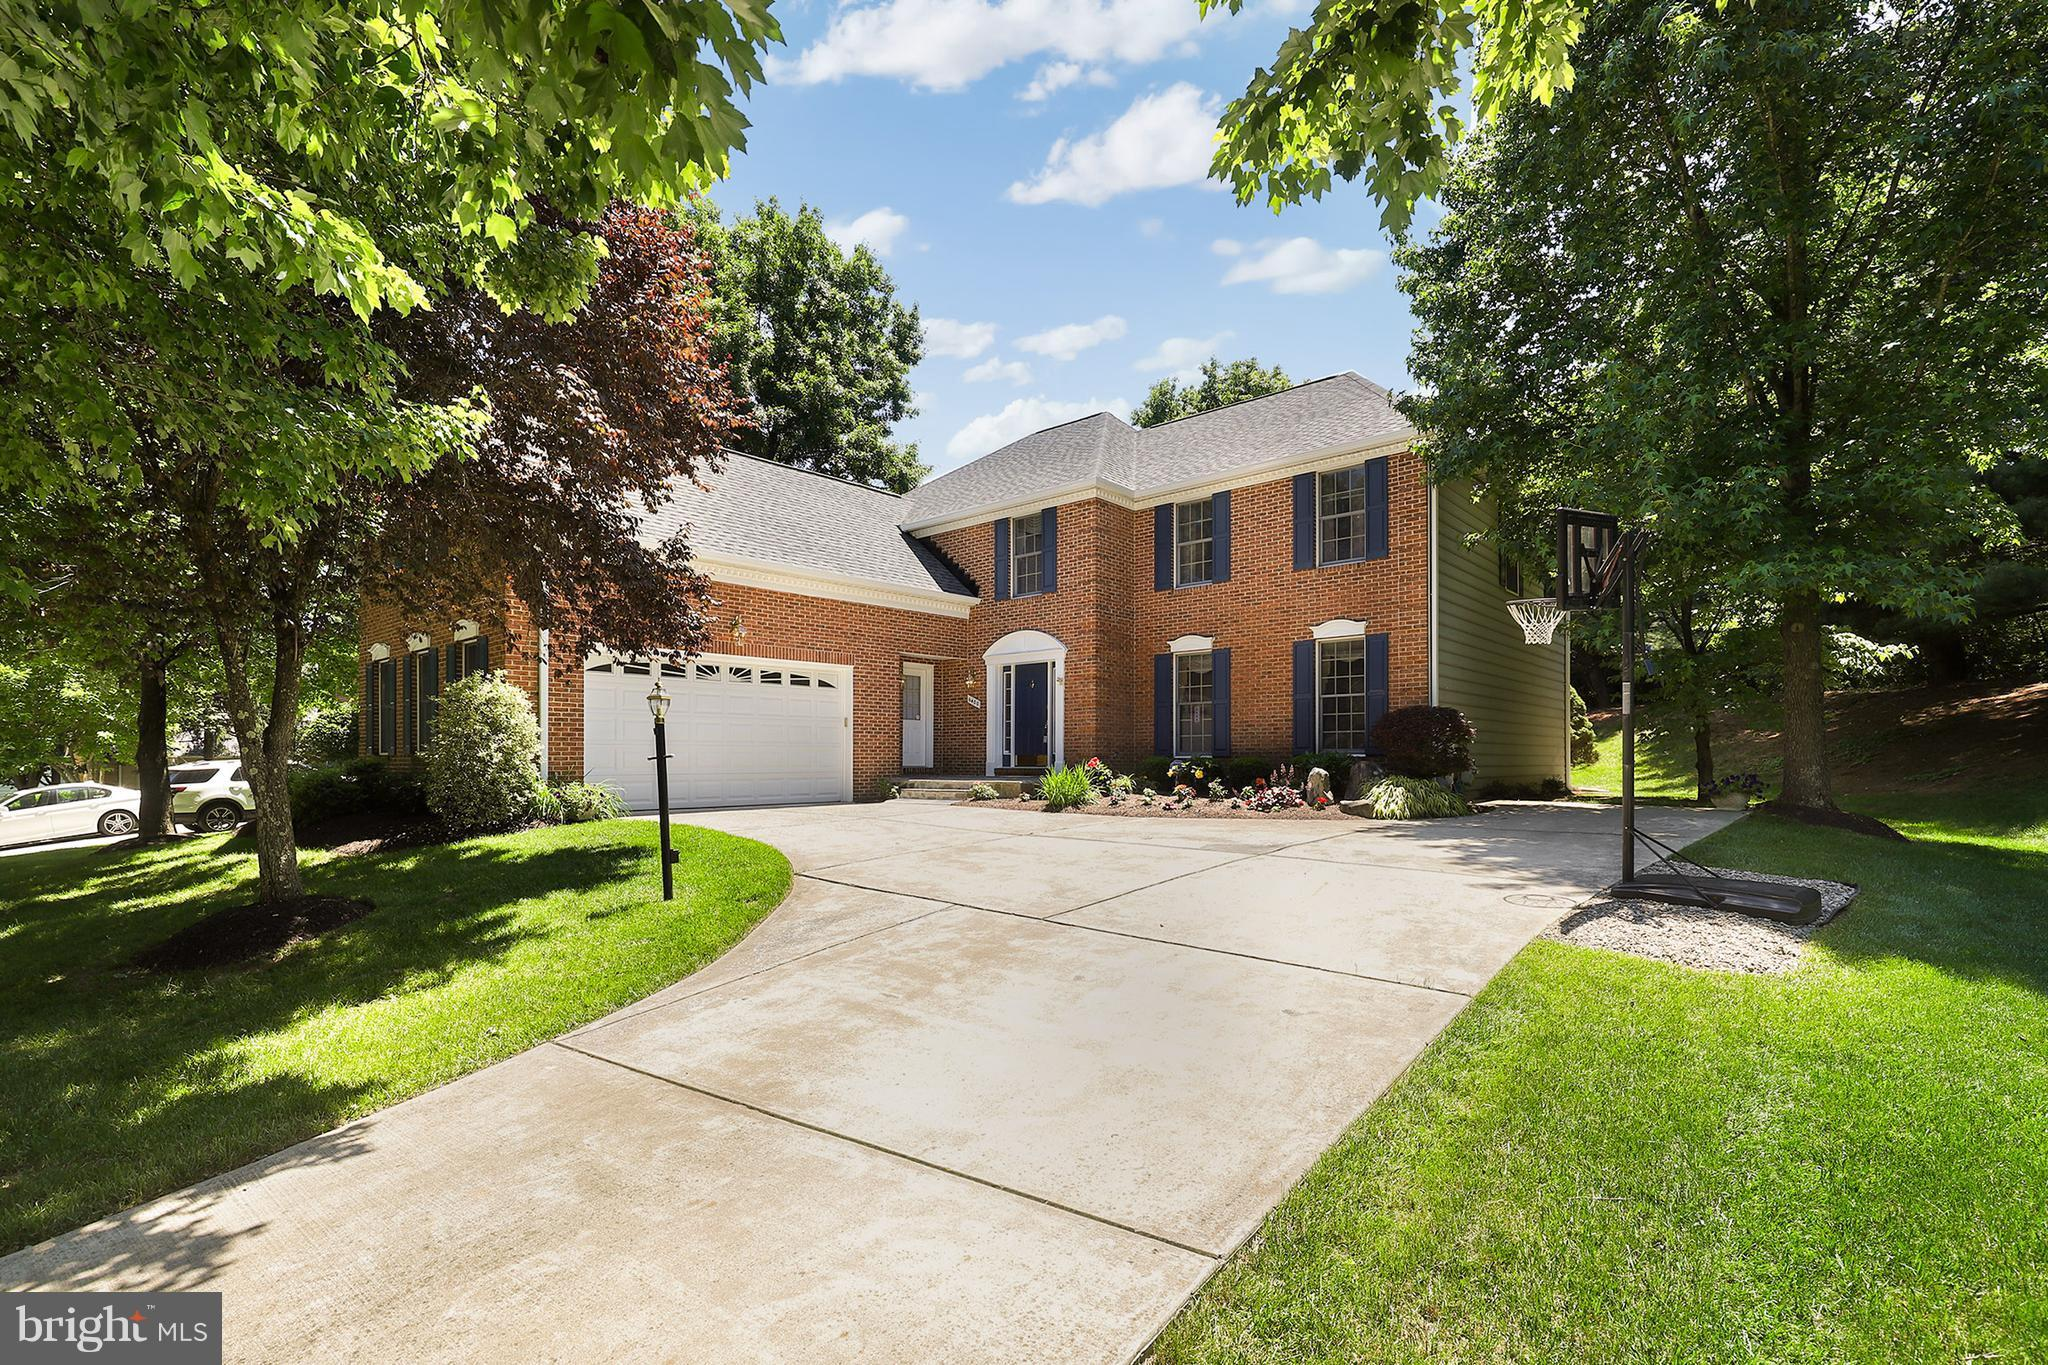 6400 SOUTH WIND CIRCLE, COLUMBIA, MD 21044